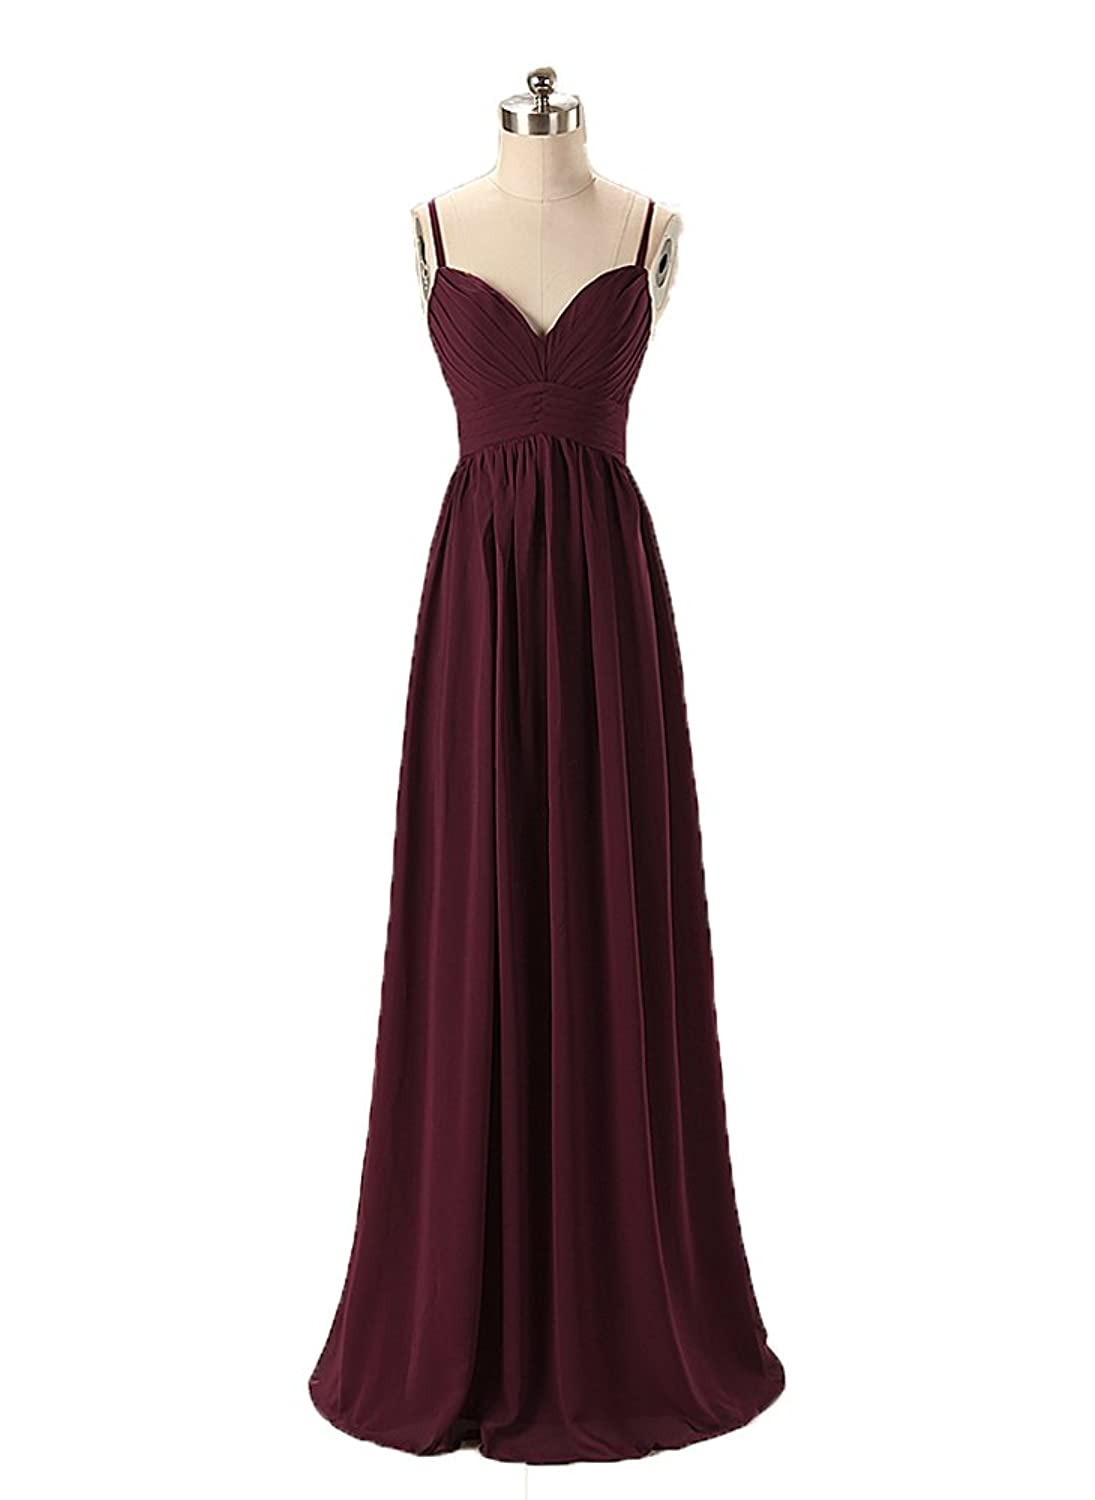 Fanmu Womens Sweetheart Removeable Straps Chiffon Bridesmaid Dresses Prom Gowns